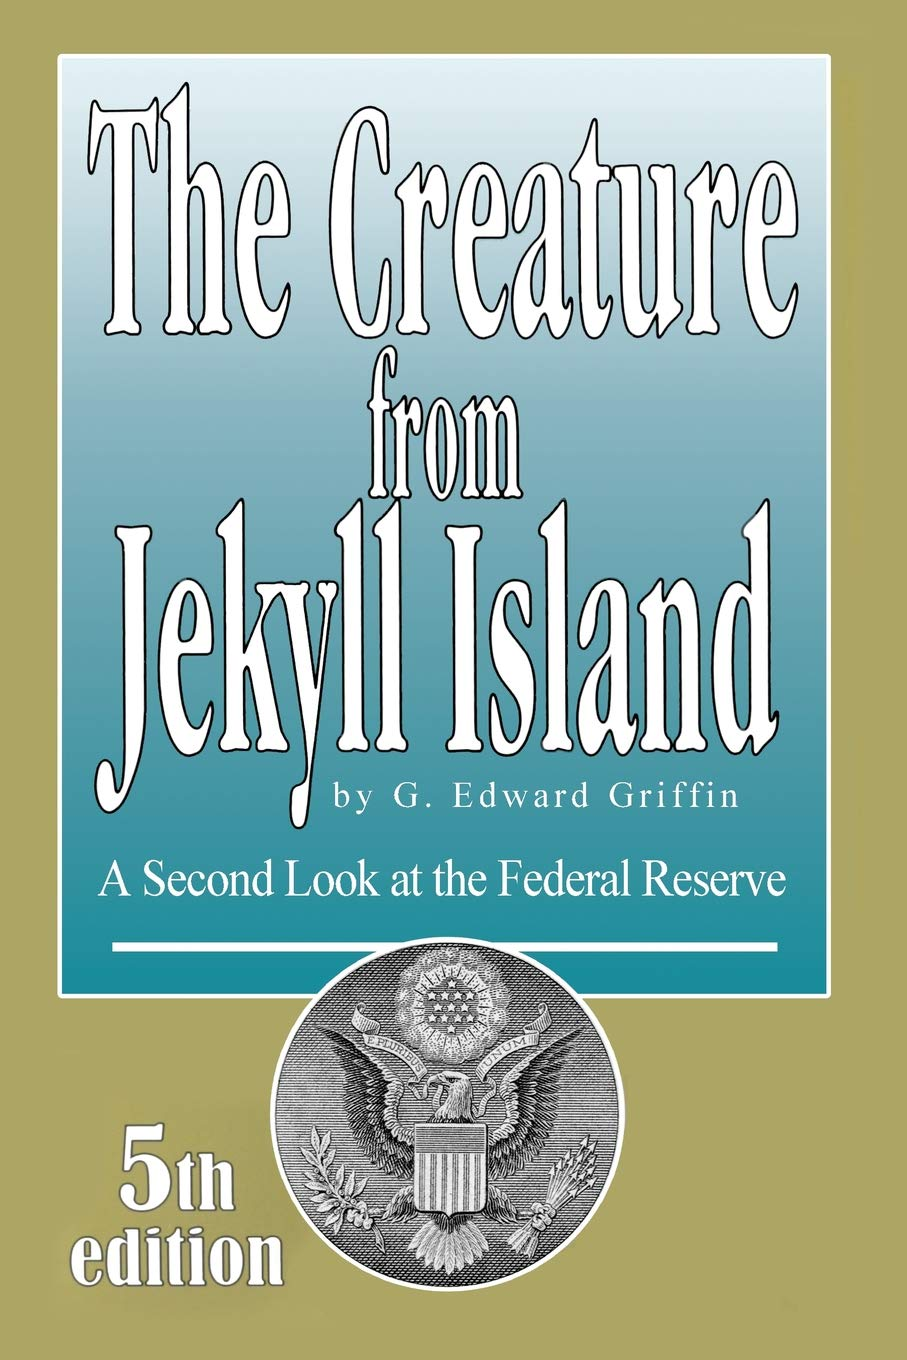 The Creature from Jekyll Island: A Second Look at the Federal Reserve: G.  Edward Griffin: 9780912986456: Amazon.com: Books